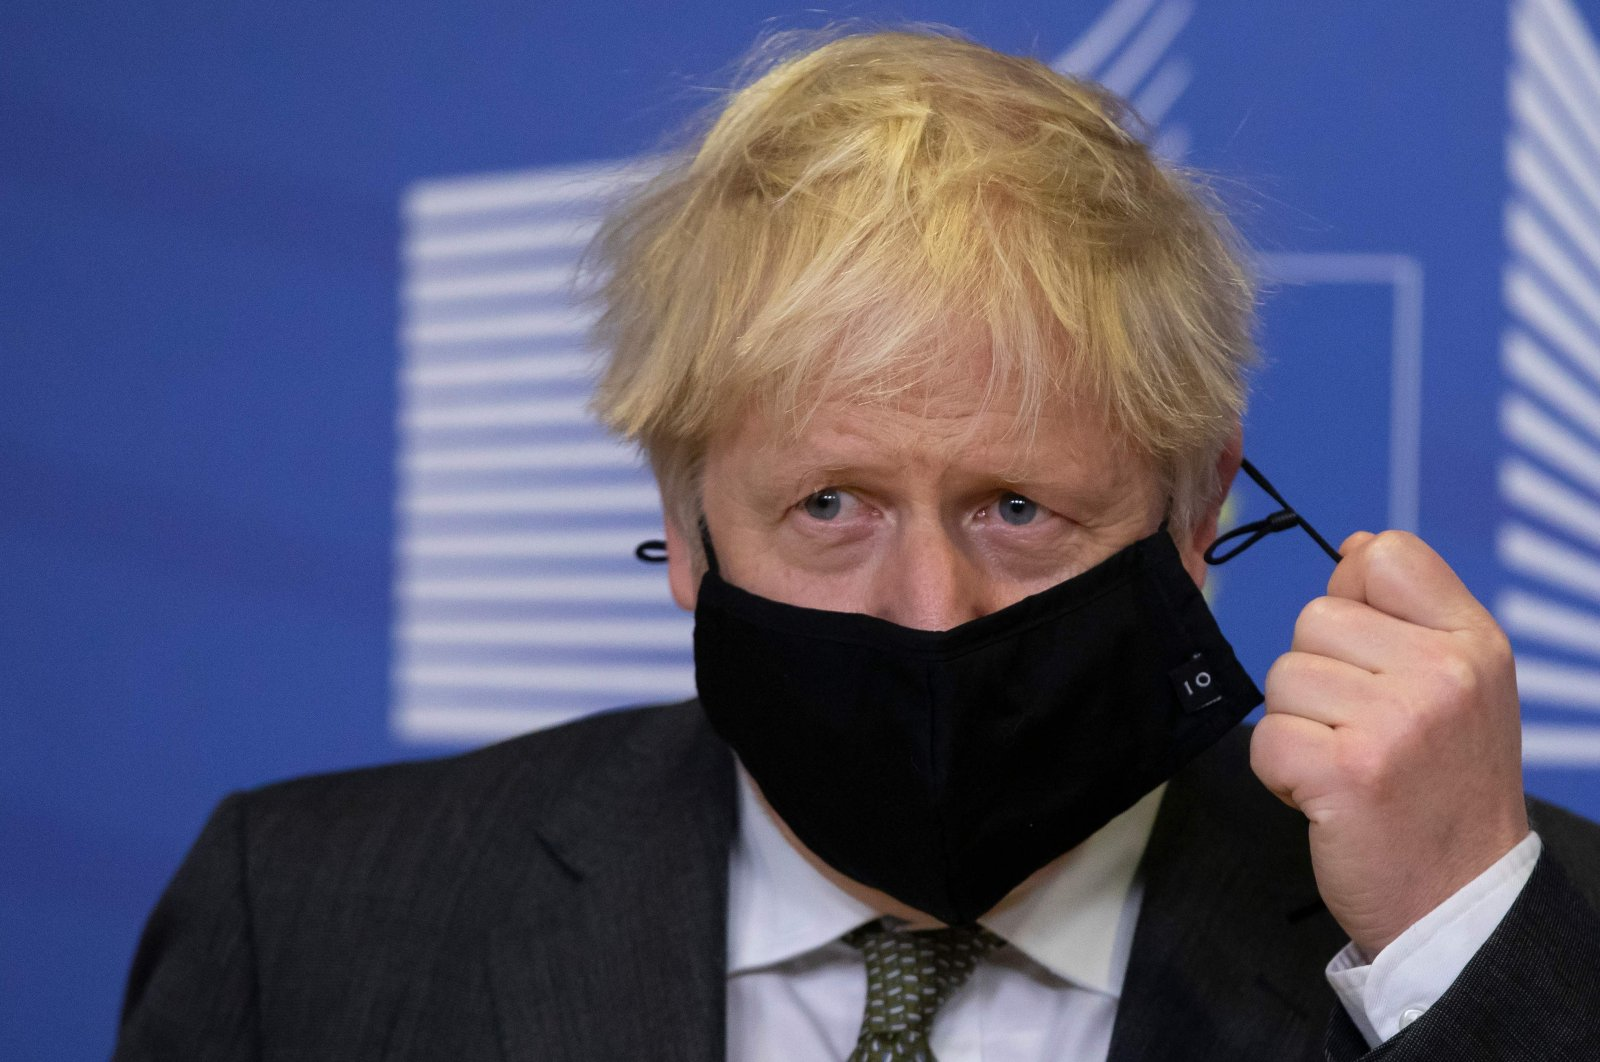 Britain's Prime Minister Boris Johnson pulls on the strings of his mask in the Berlaymont building at European Union headquarters, Brussels, Belgium, Dec. 9, 2020. (AFP Photo)